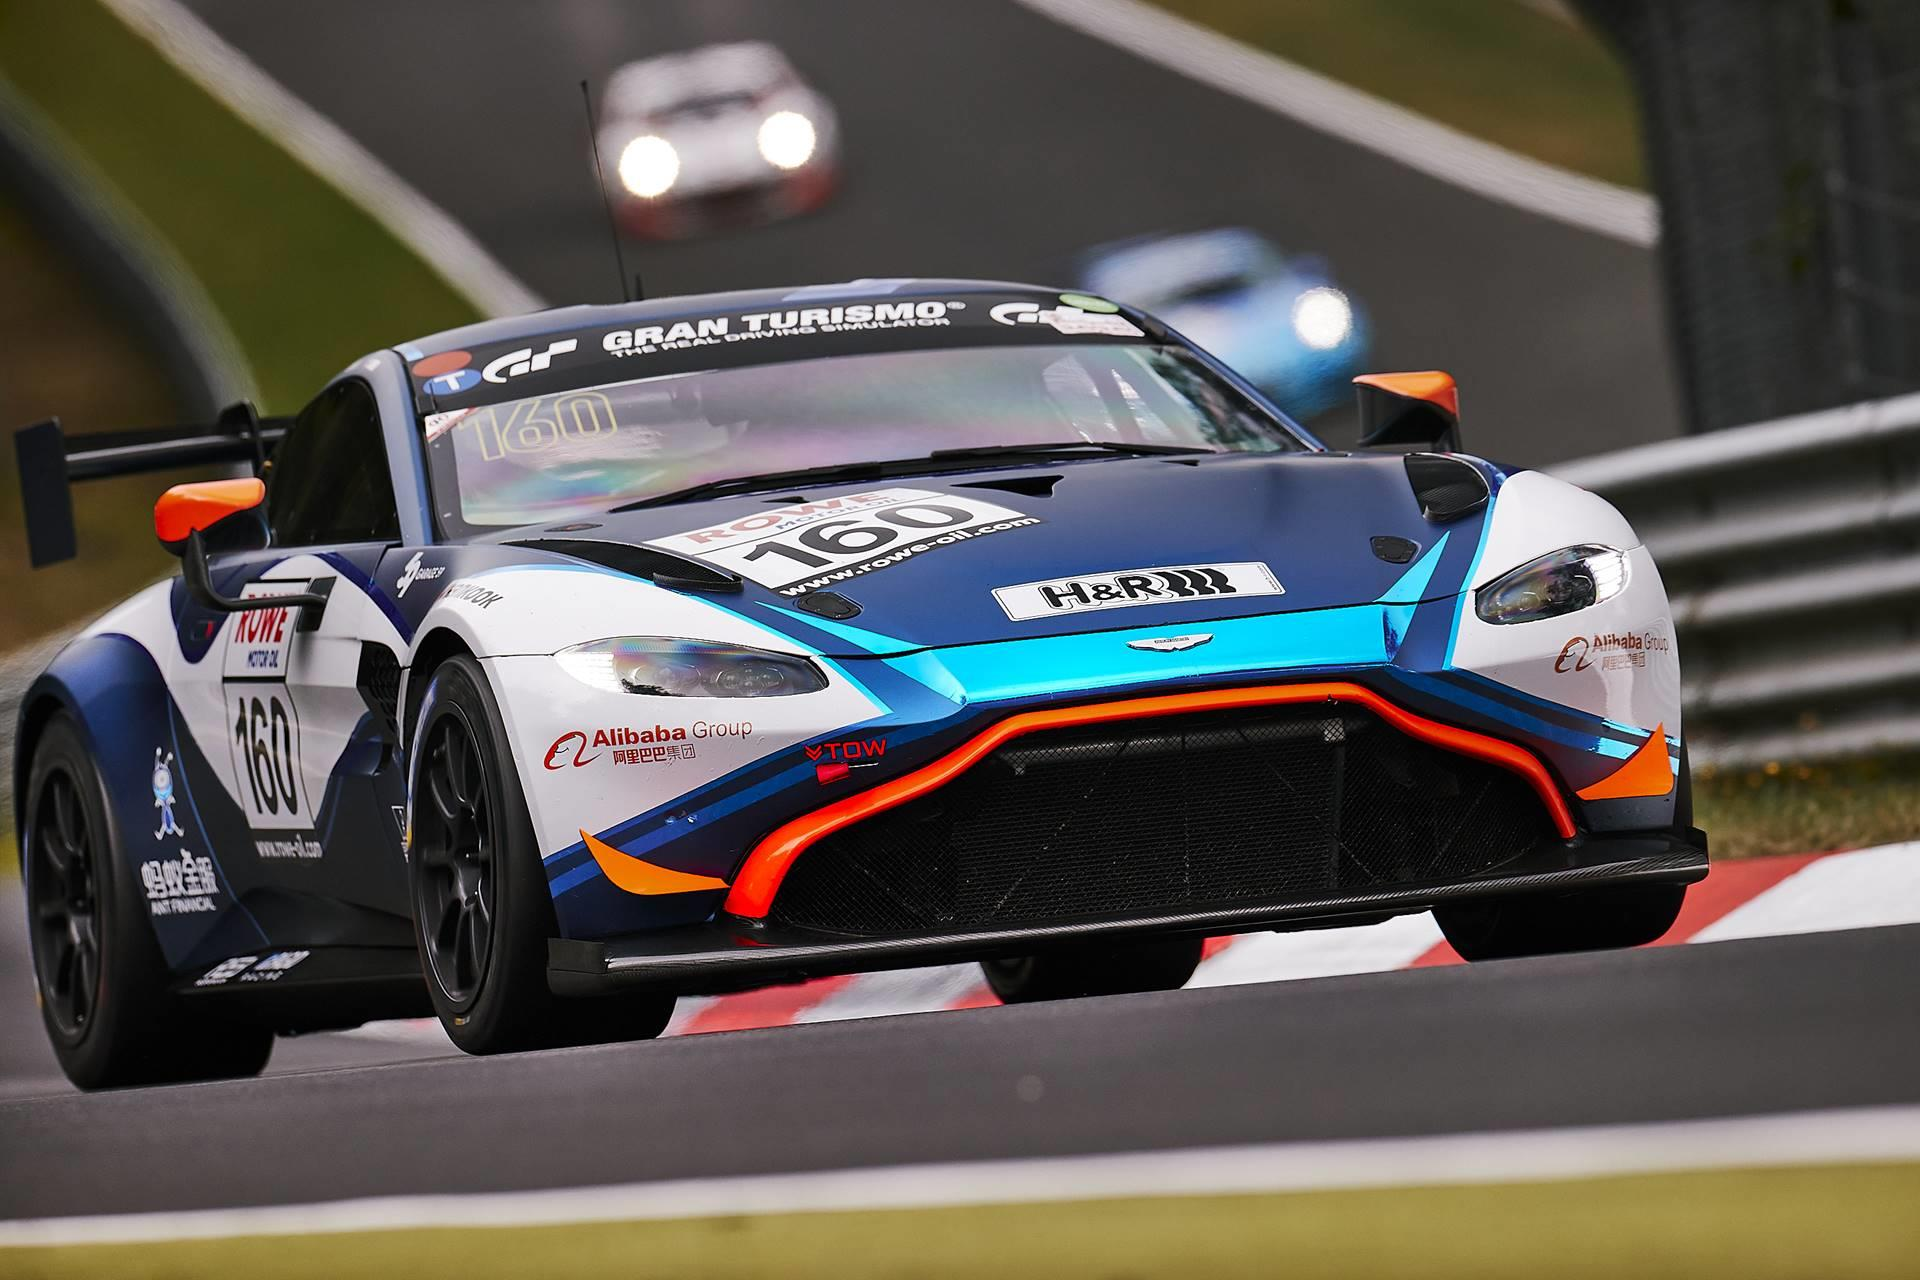 2021 Aston Martin Vantage Gt8r News And Information Research And Pricing